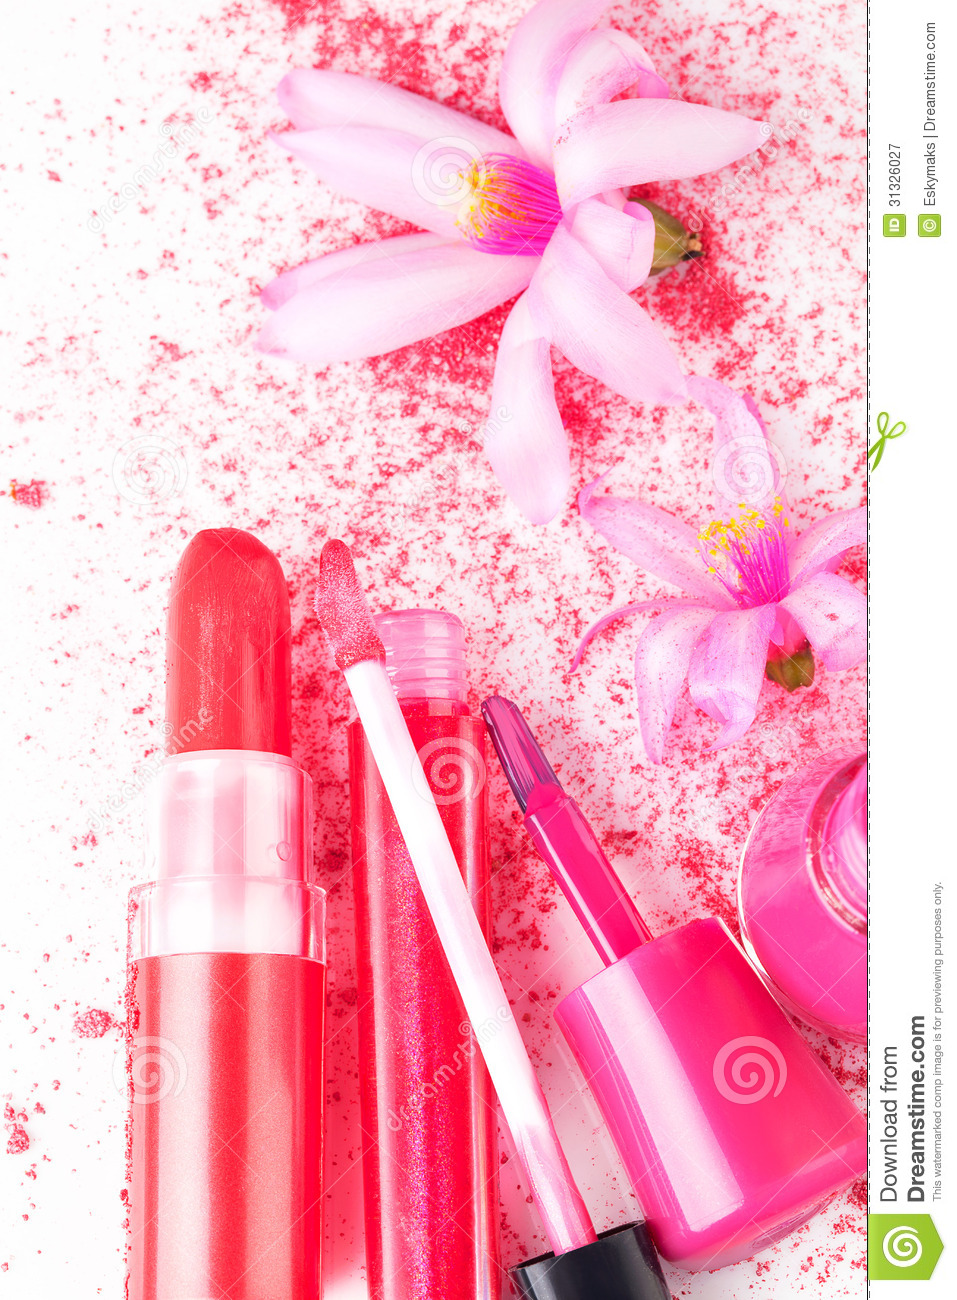 pink girly cosmetcis stock image image of close up